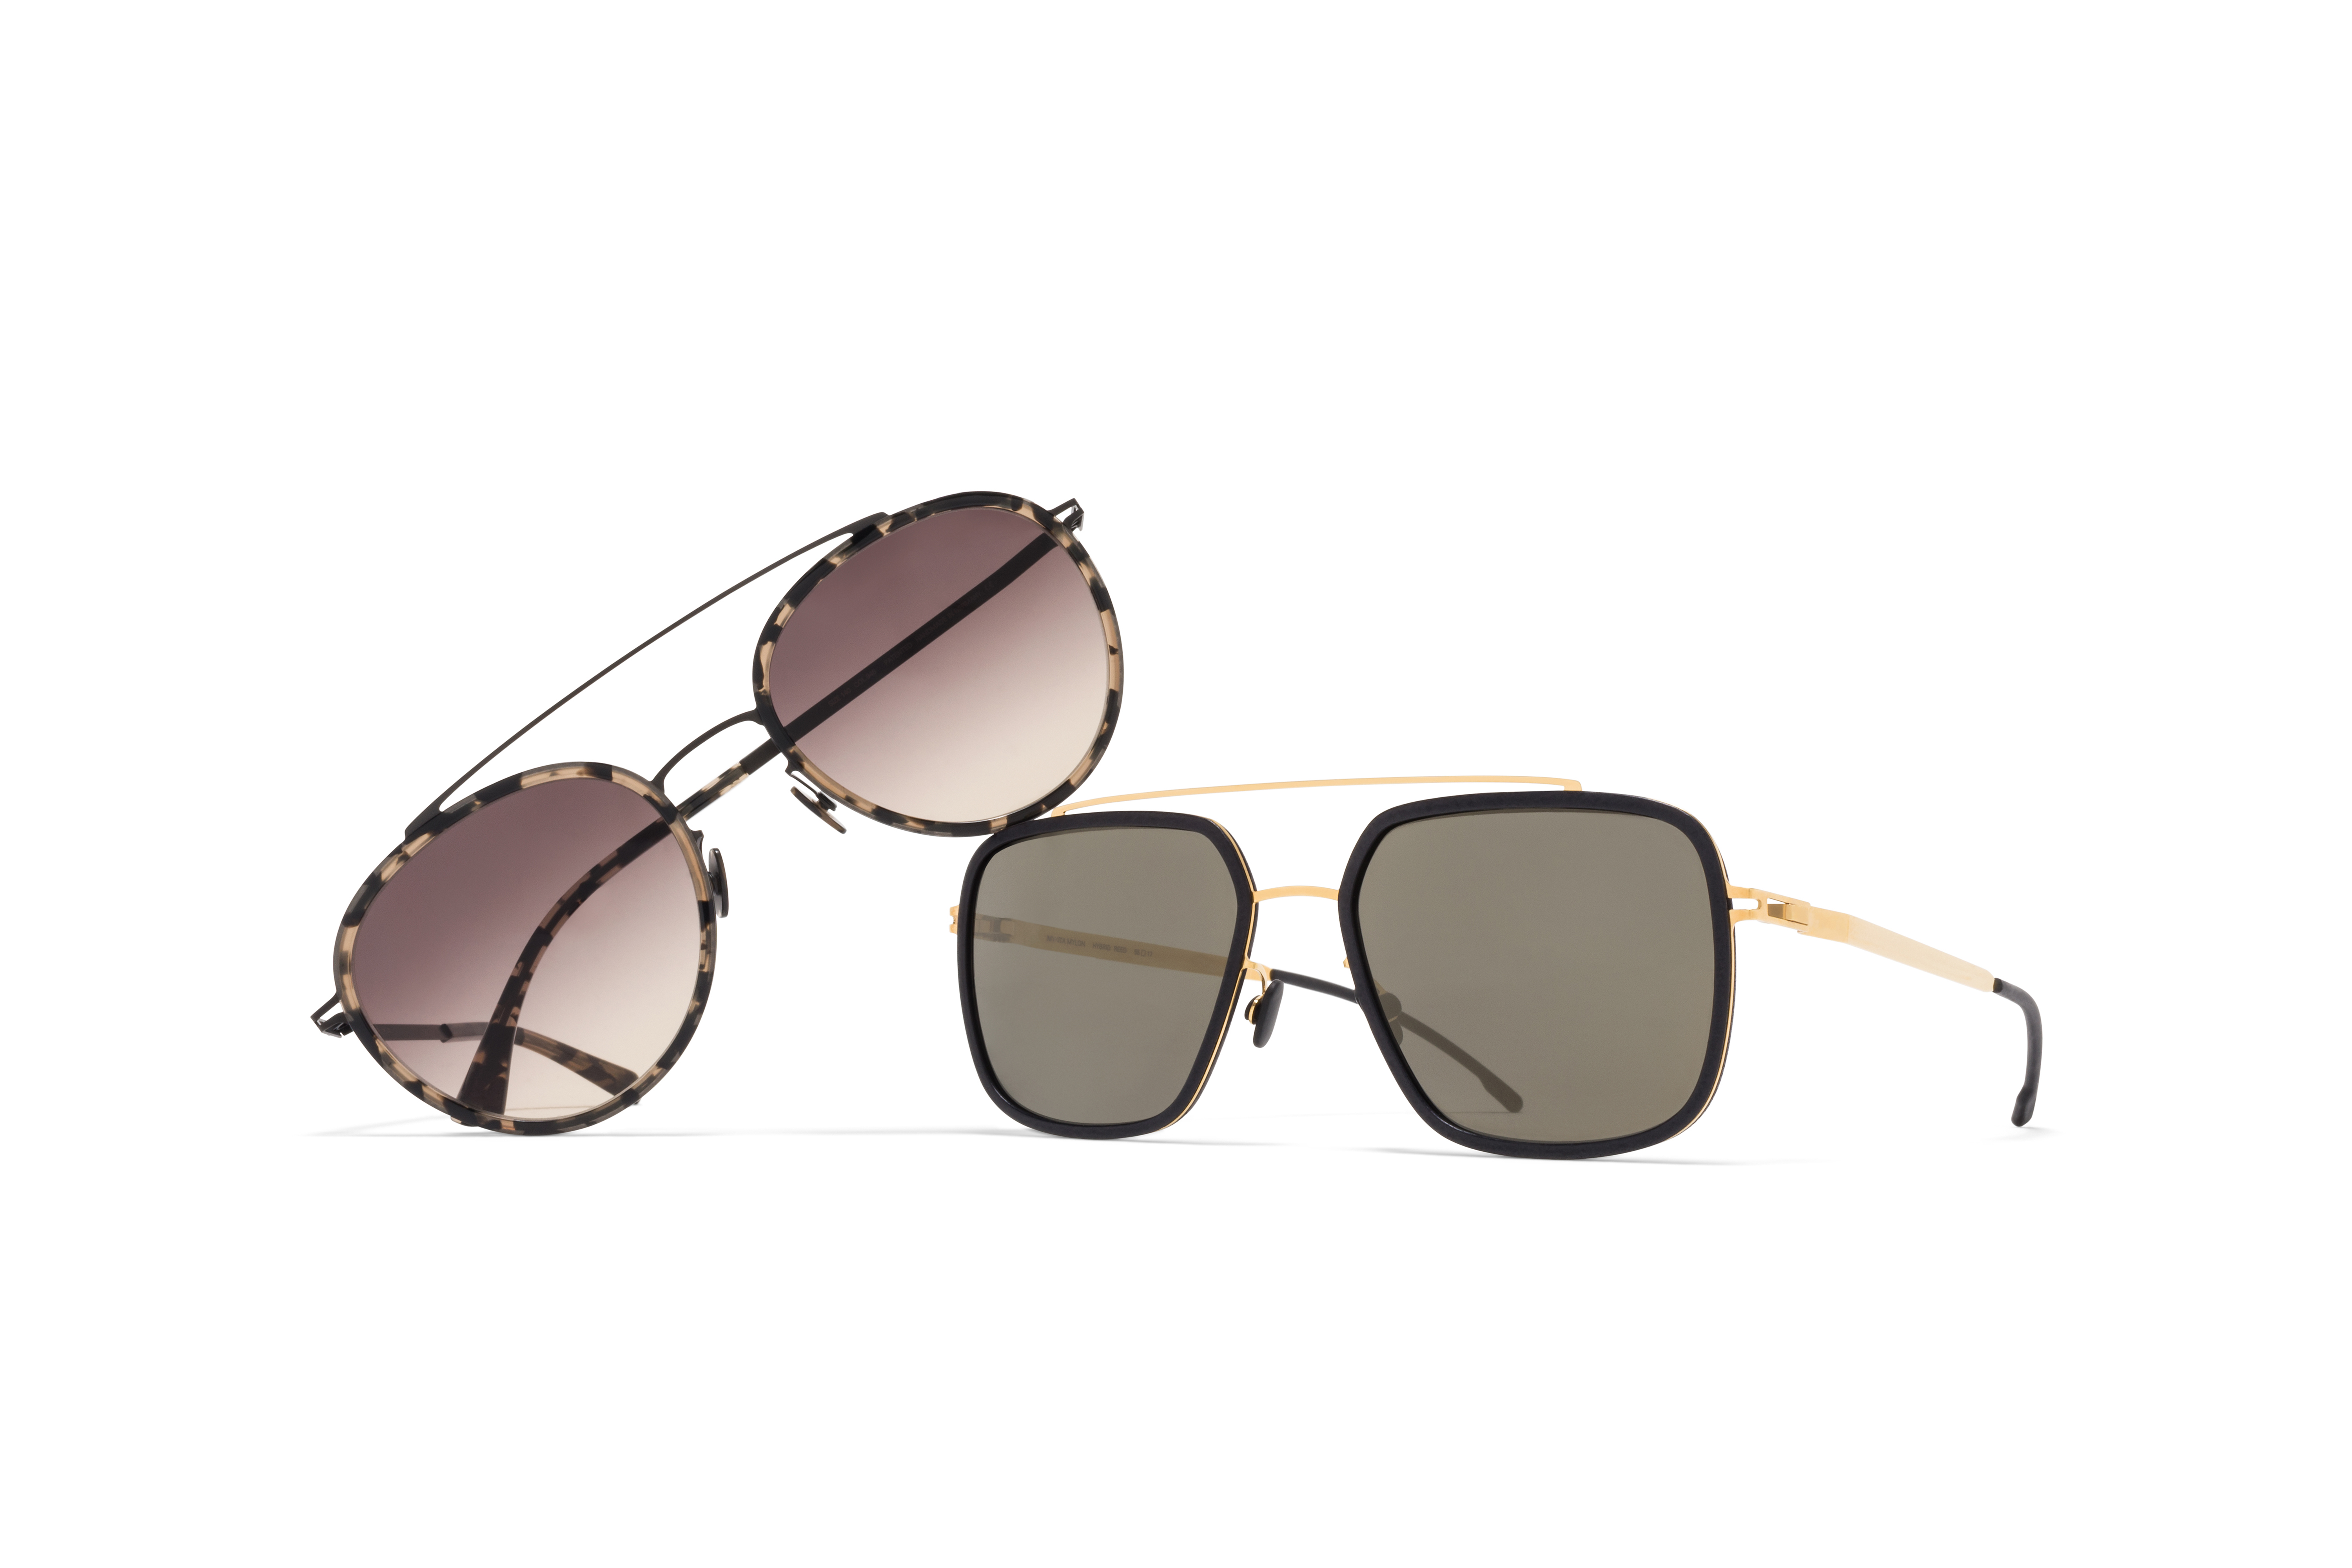 MYKITA Lite Acetate Aviator Sunglasses Meri Reed